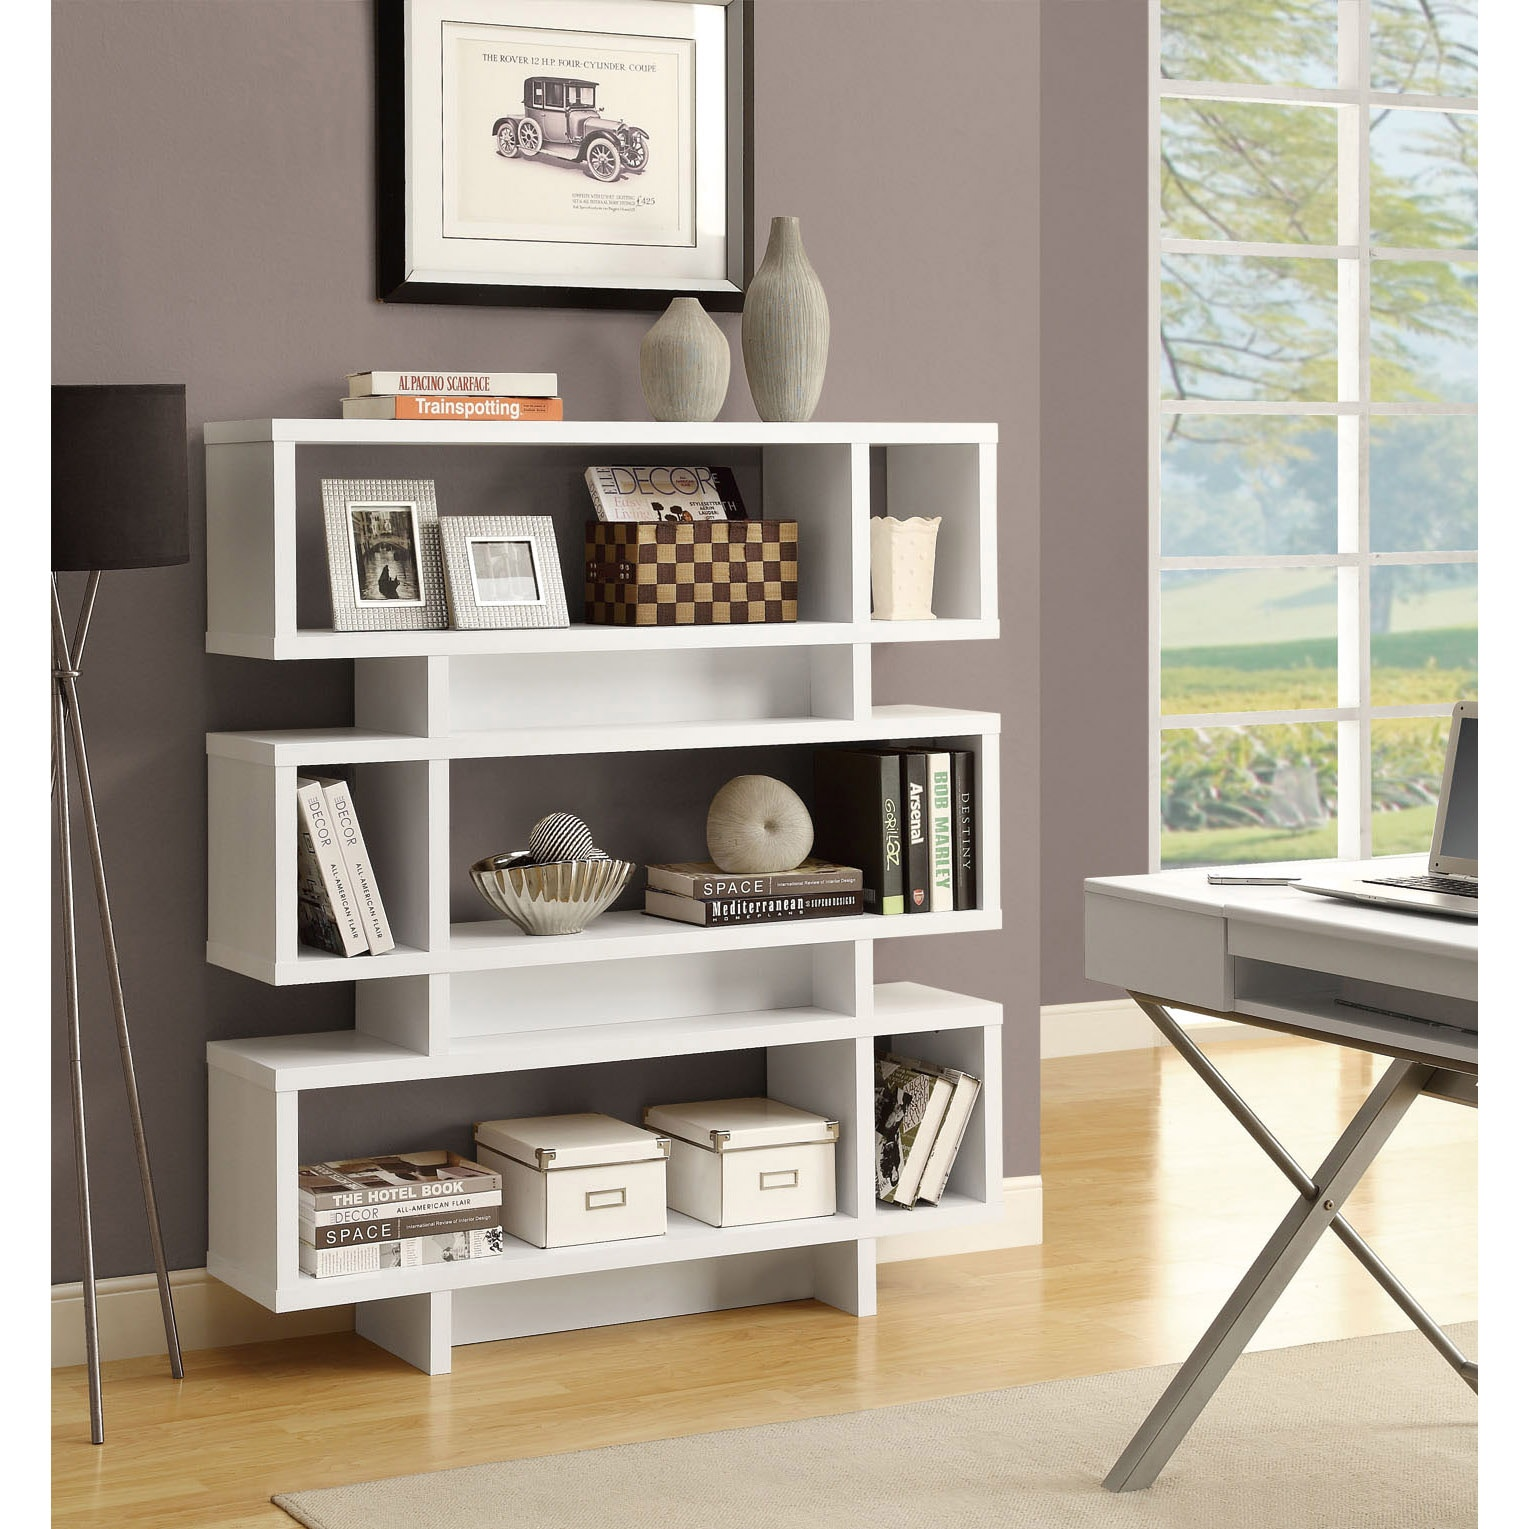 White 55 Inch High Modern Bookcase 14348523 Overstock Com Shopping Great Deals On Monarch